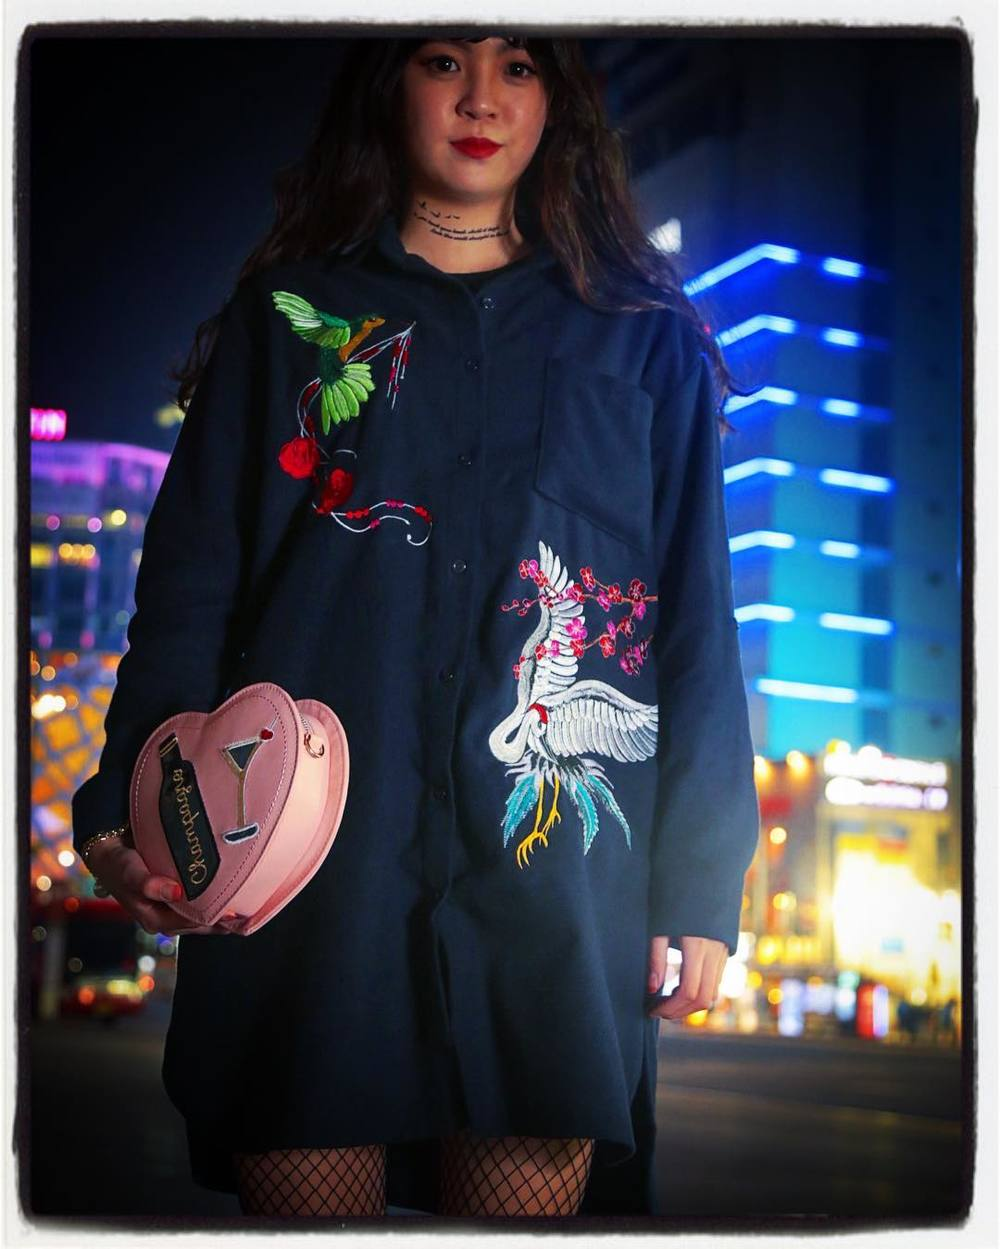 It's interesting to see the same  sukajan  idea done on a shirtdress but with Korean traditional art motifs. And now, it's noticeably  girly , not tough-guy.